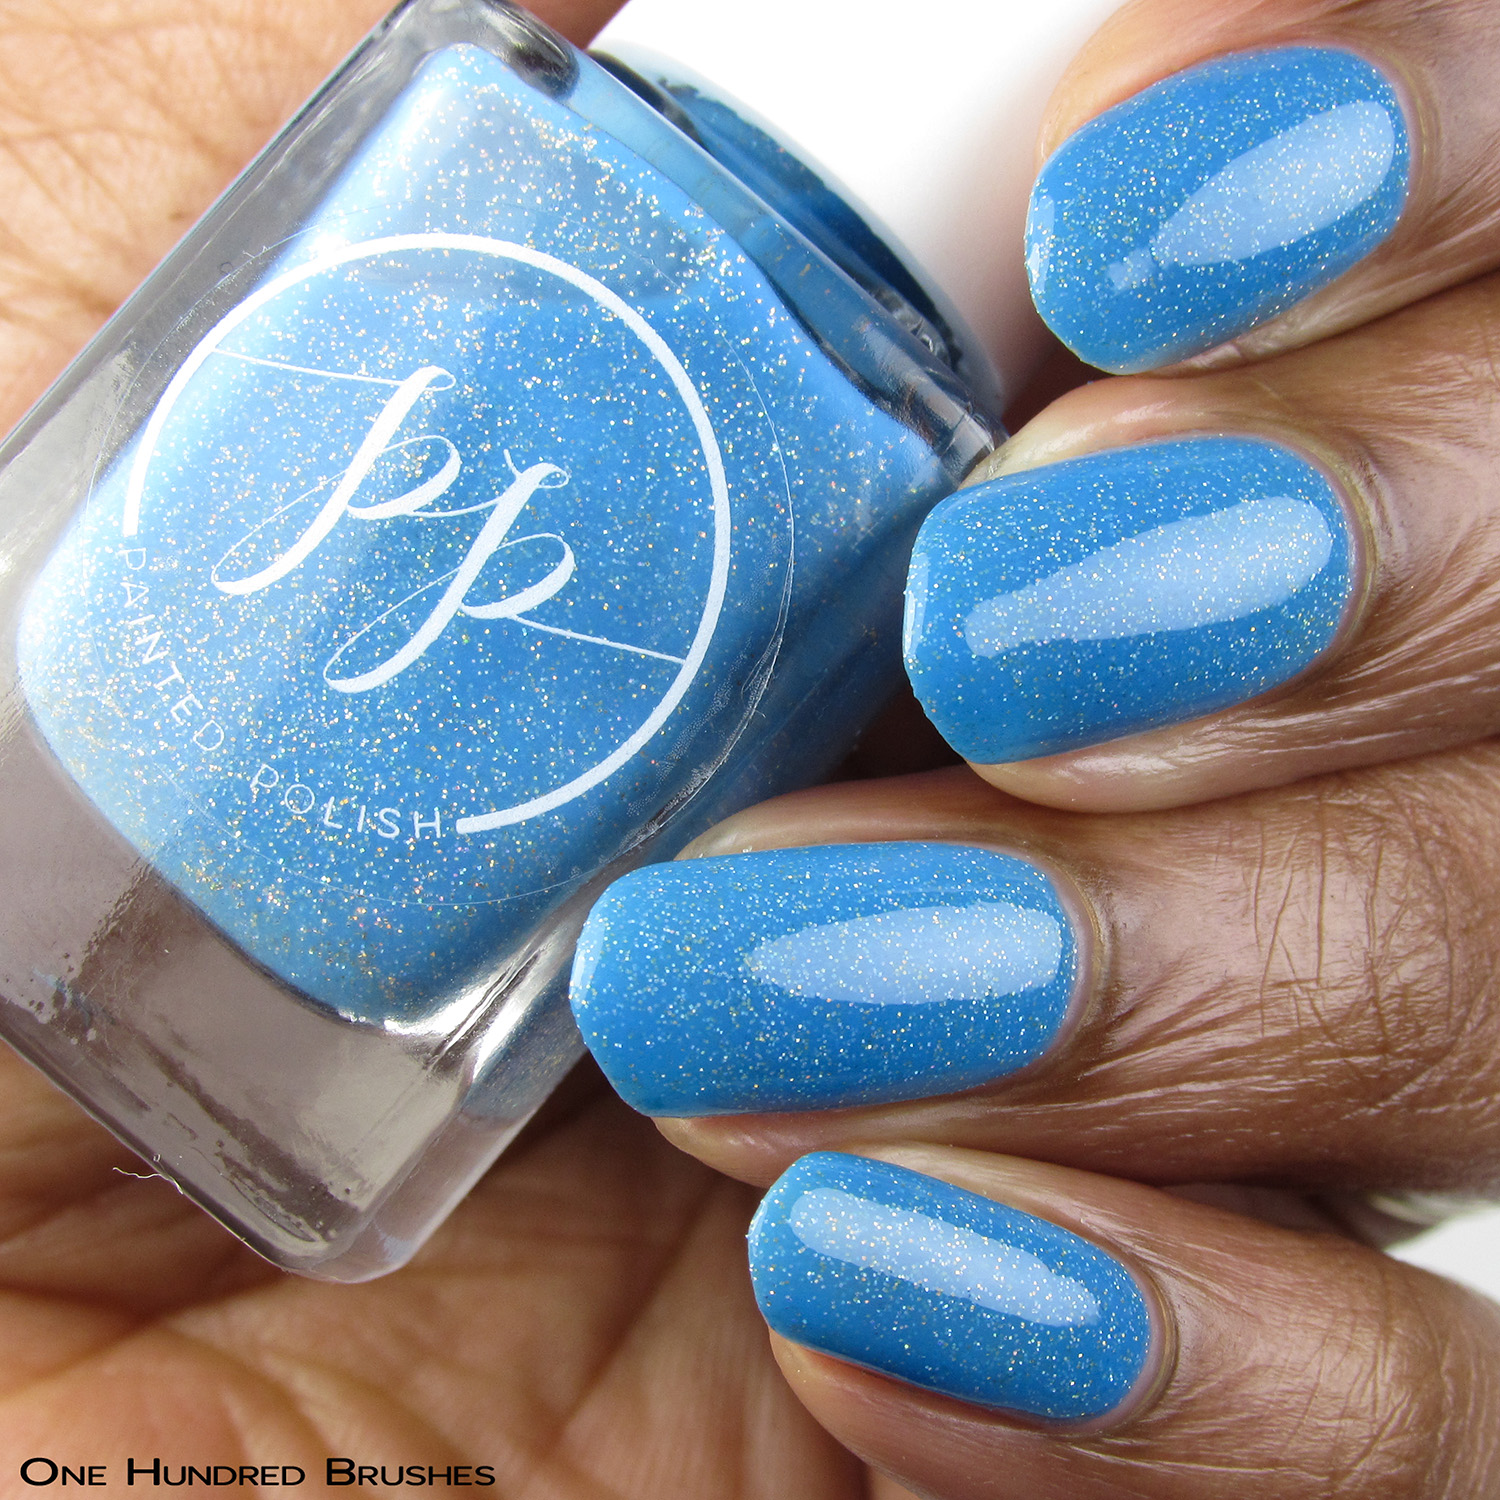 Yacht To Be Cruisin' - At The Sea Vol IV - Painted Polish